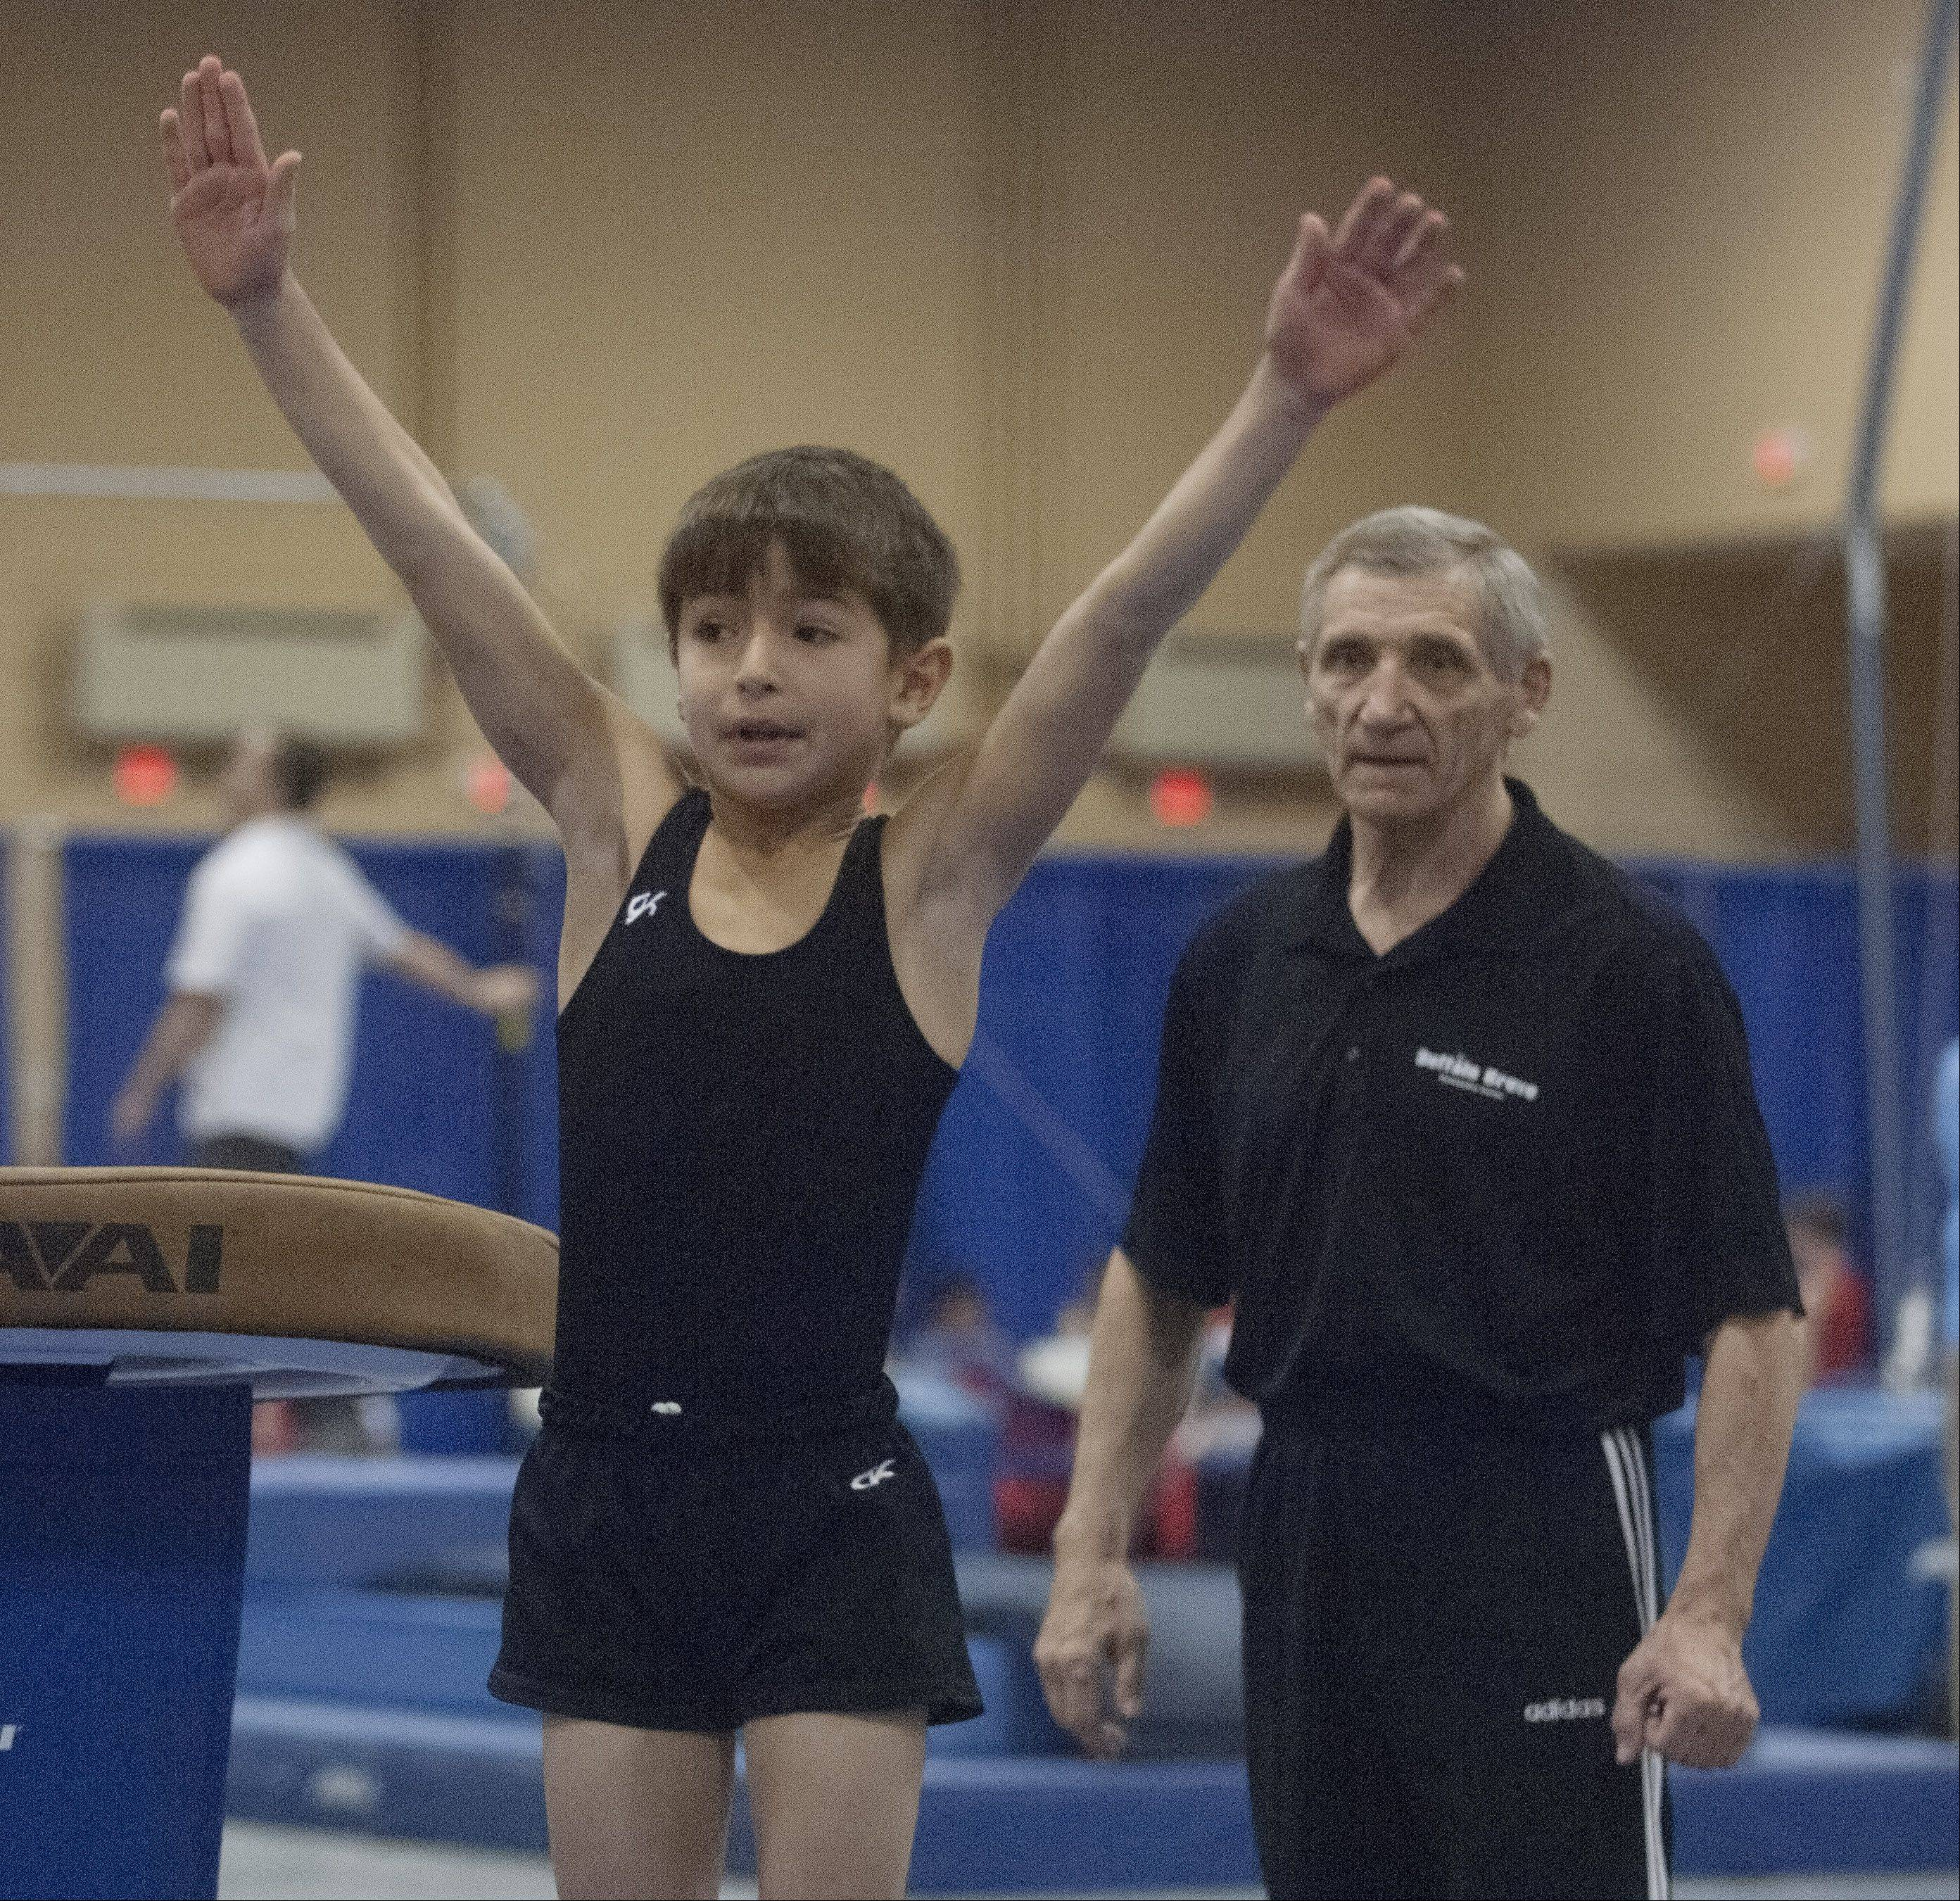 With coach Yevgeniy Vovkiv watching, Benjamin Valak of the Buffalo Grove Gymnastic Center turns toward the judge while competing on vault during the Hawaiian Pineapple Classic gymnastics meet, held at the Schaumburg Convention Center Saturday.